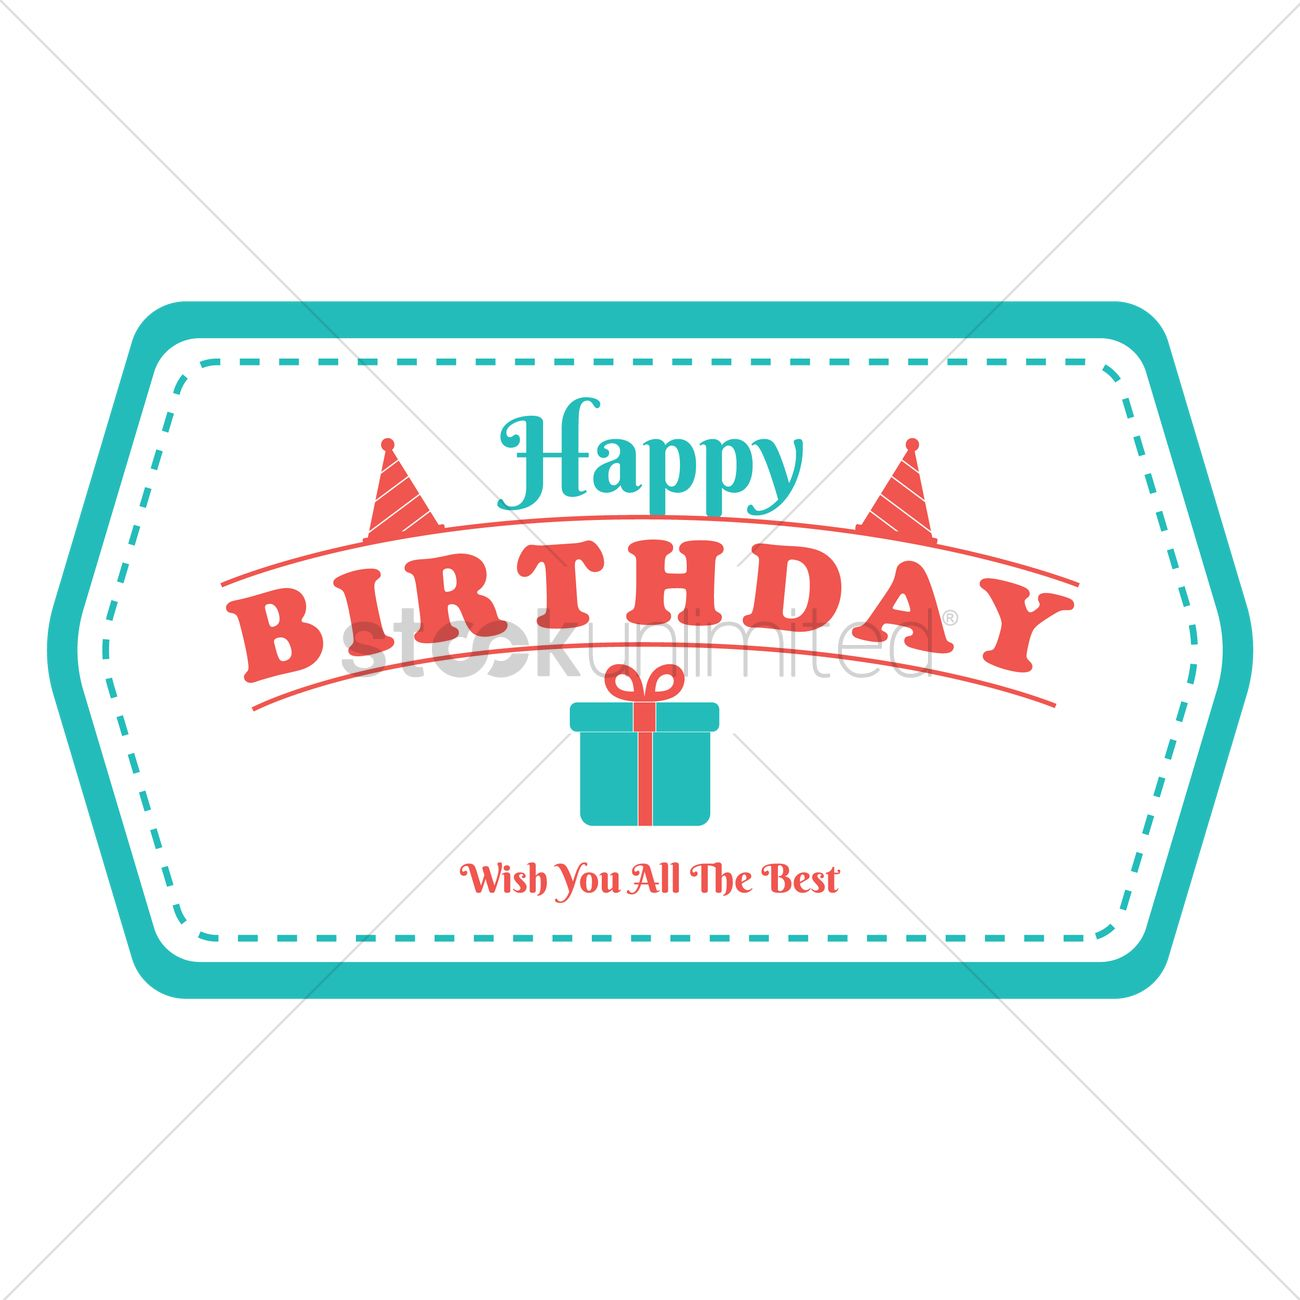 happy birthday address labels ; happy-birthday-label-design_1799563